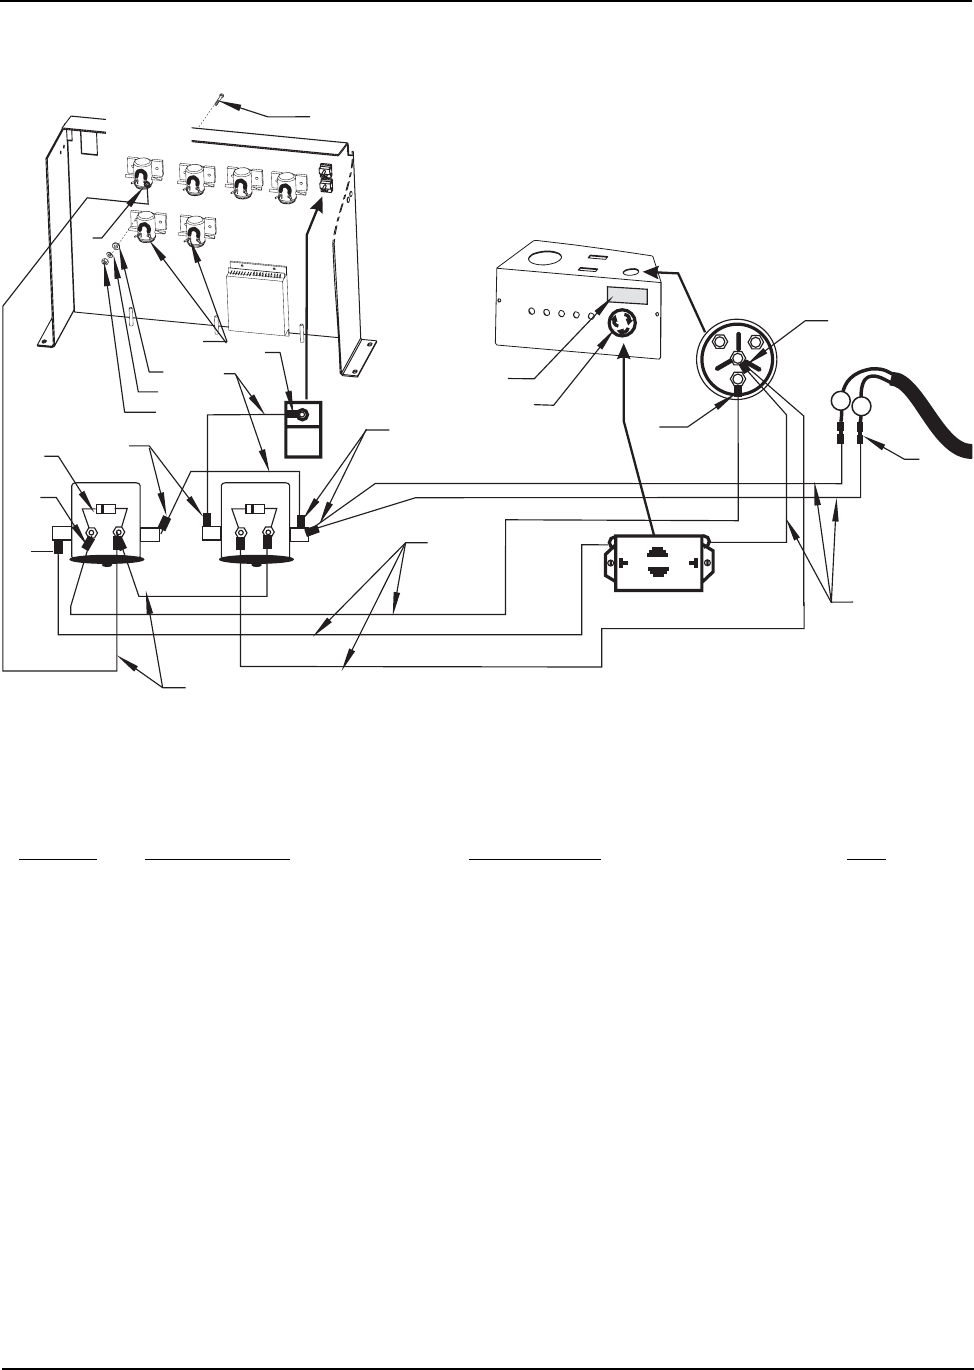 Nilfisk Alto 114rs Sweeper 1 16 17 15 Lincoln Foot Pedal Wiring Diagram American Technology 3 11